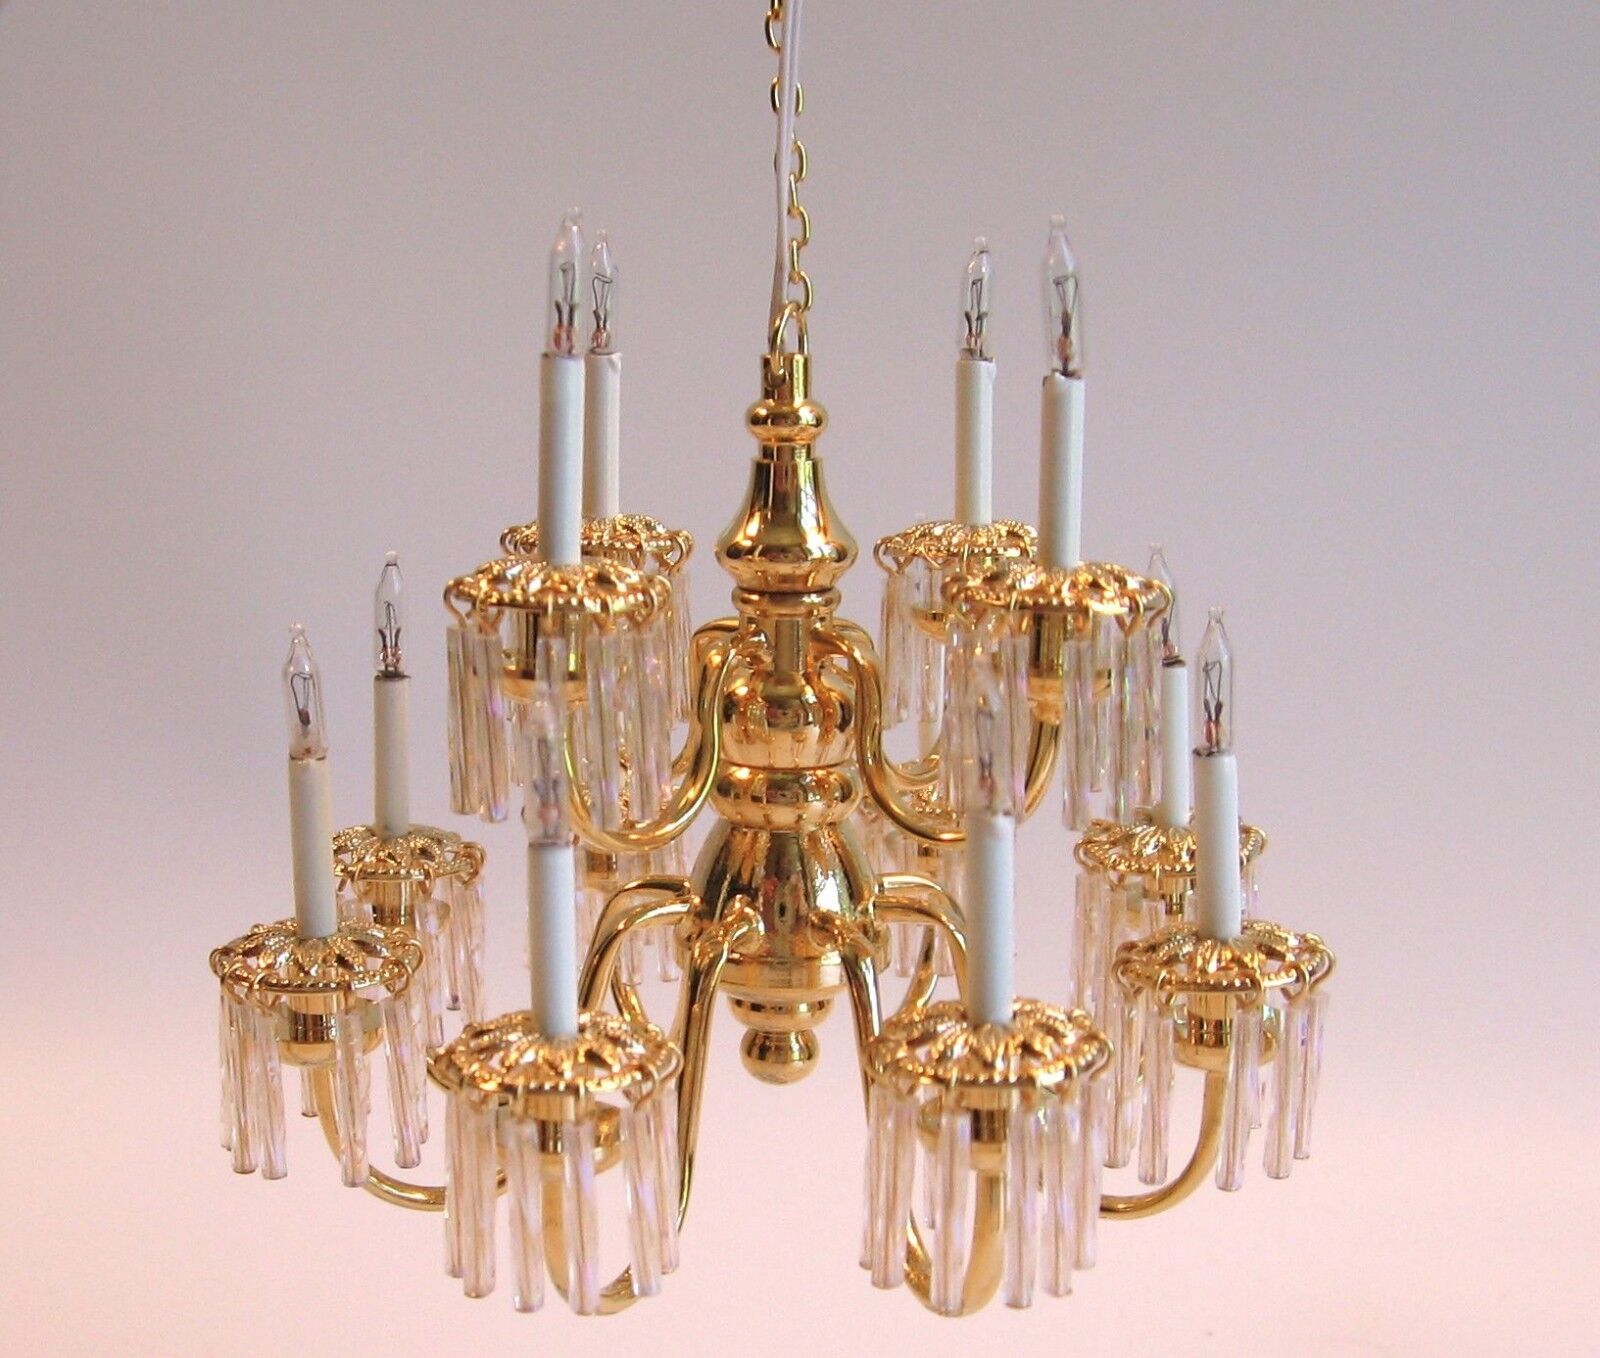 Dollhouse doll house miniature 12 ARM CRYSTAL ELECTRIC CHANDELIER LAMP